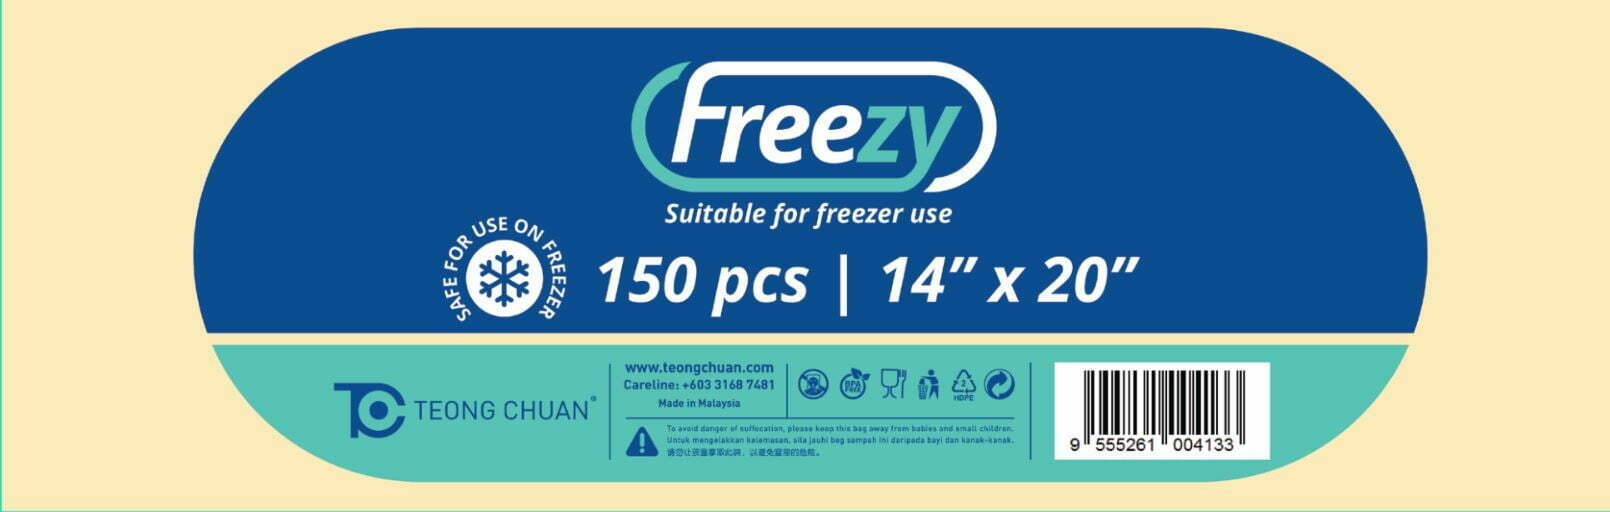 Teong Chuan Freezy plastic bag